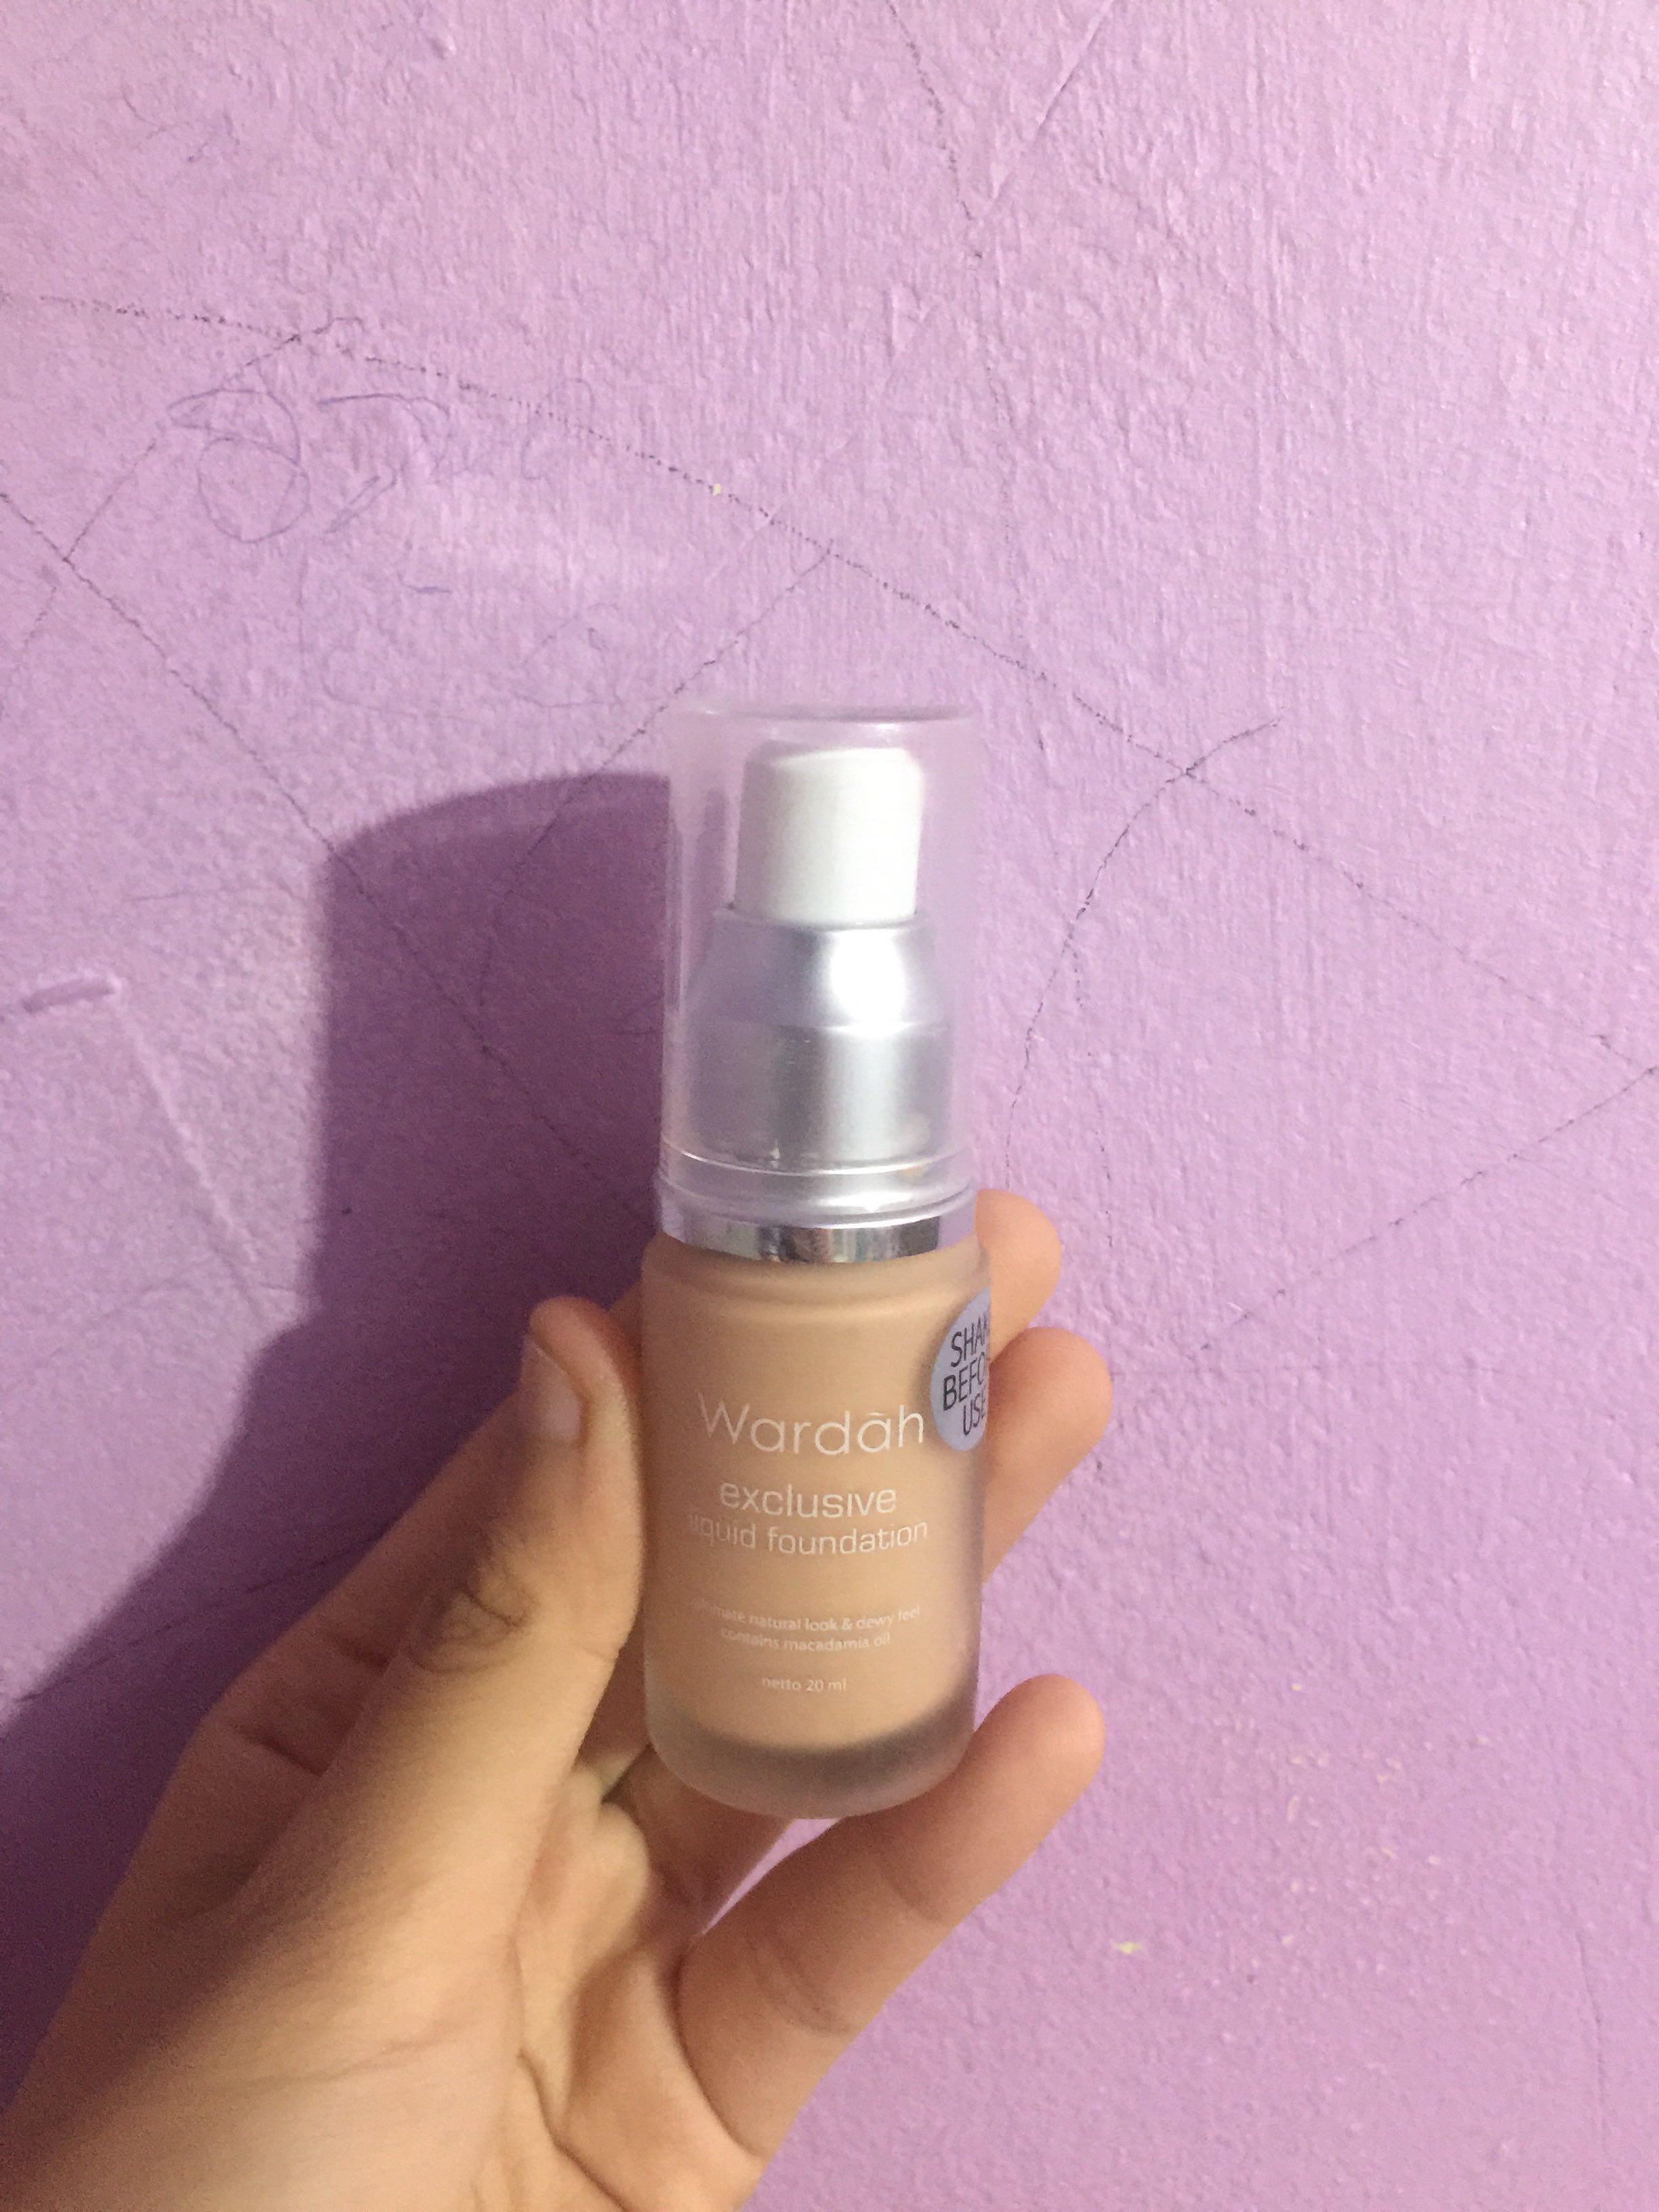 Foundation Wardah Exclusive Liquid Foundation 03 Sandy Beige Preloved, Health & Beauty, Makeup on Carousell